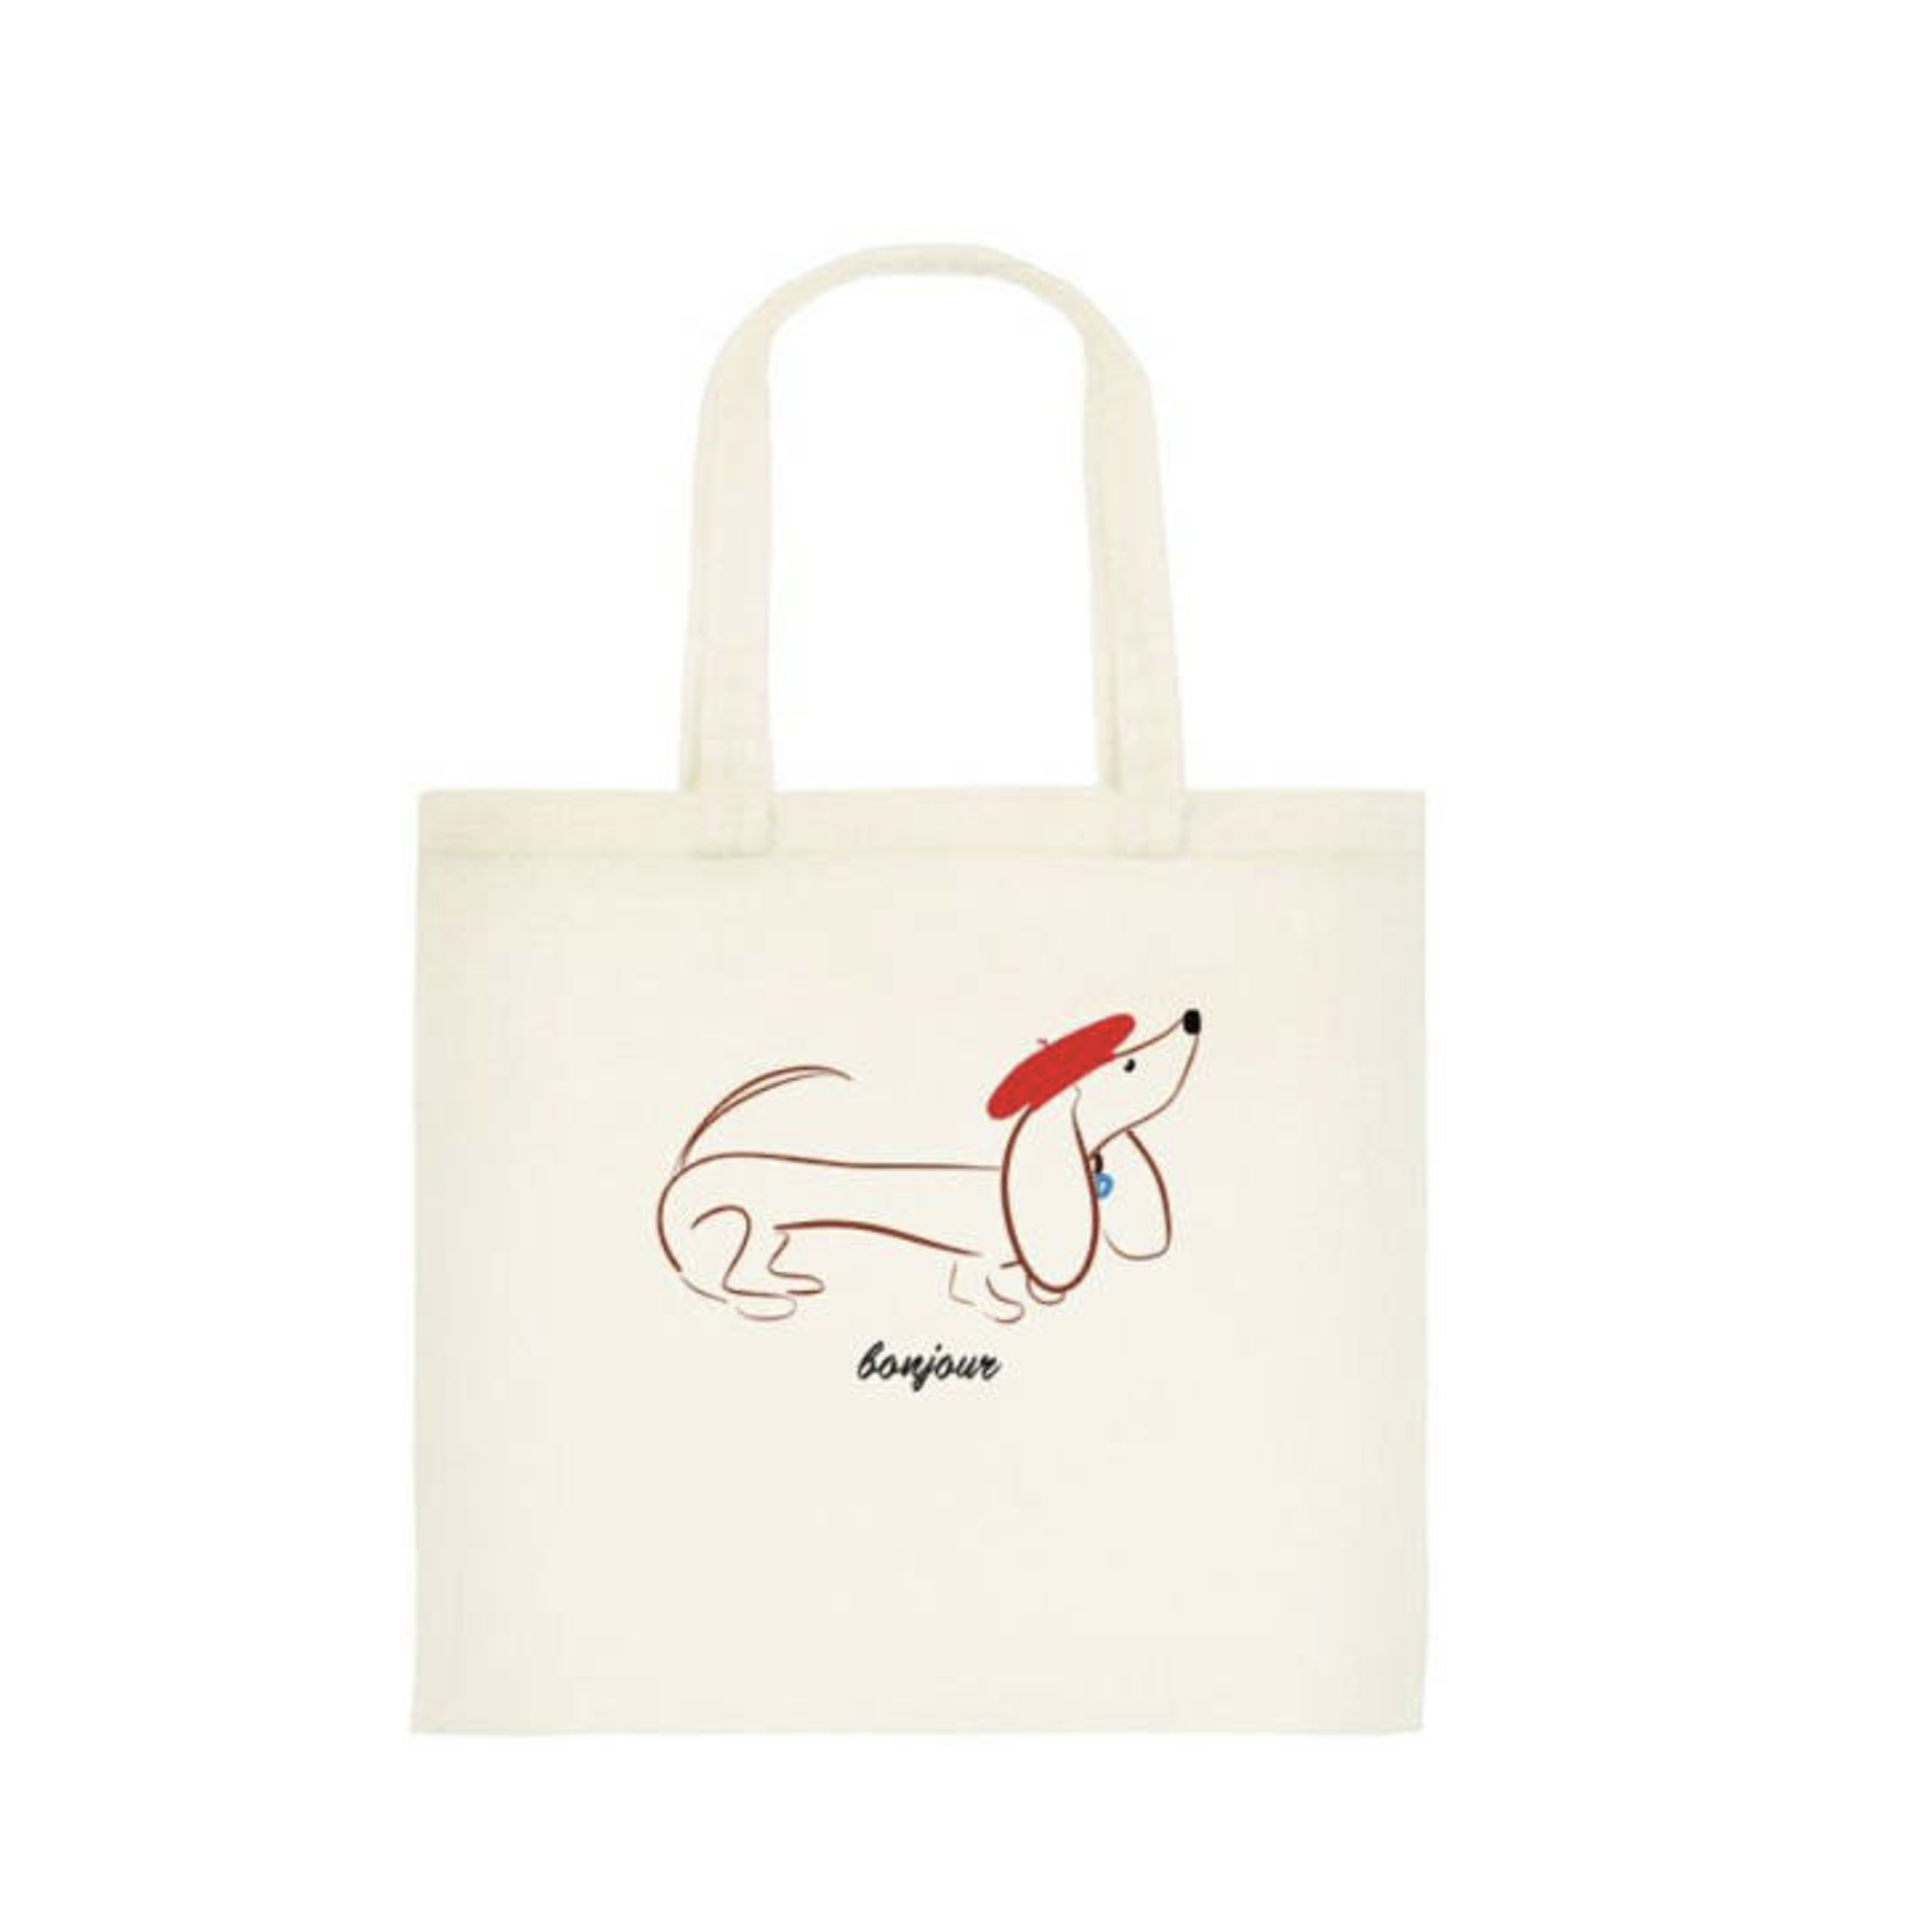 Gilmore the Dachshund© tote bag